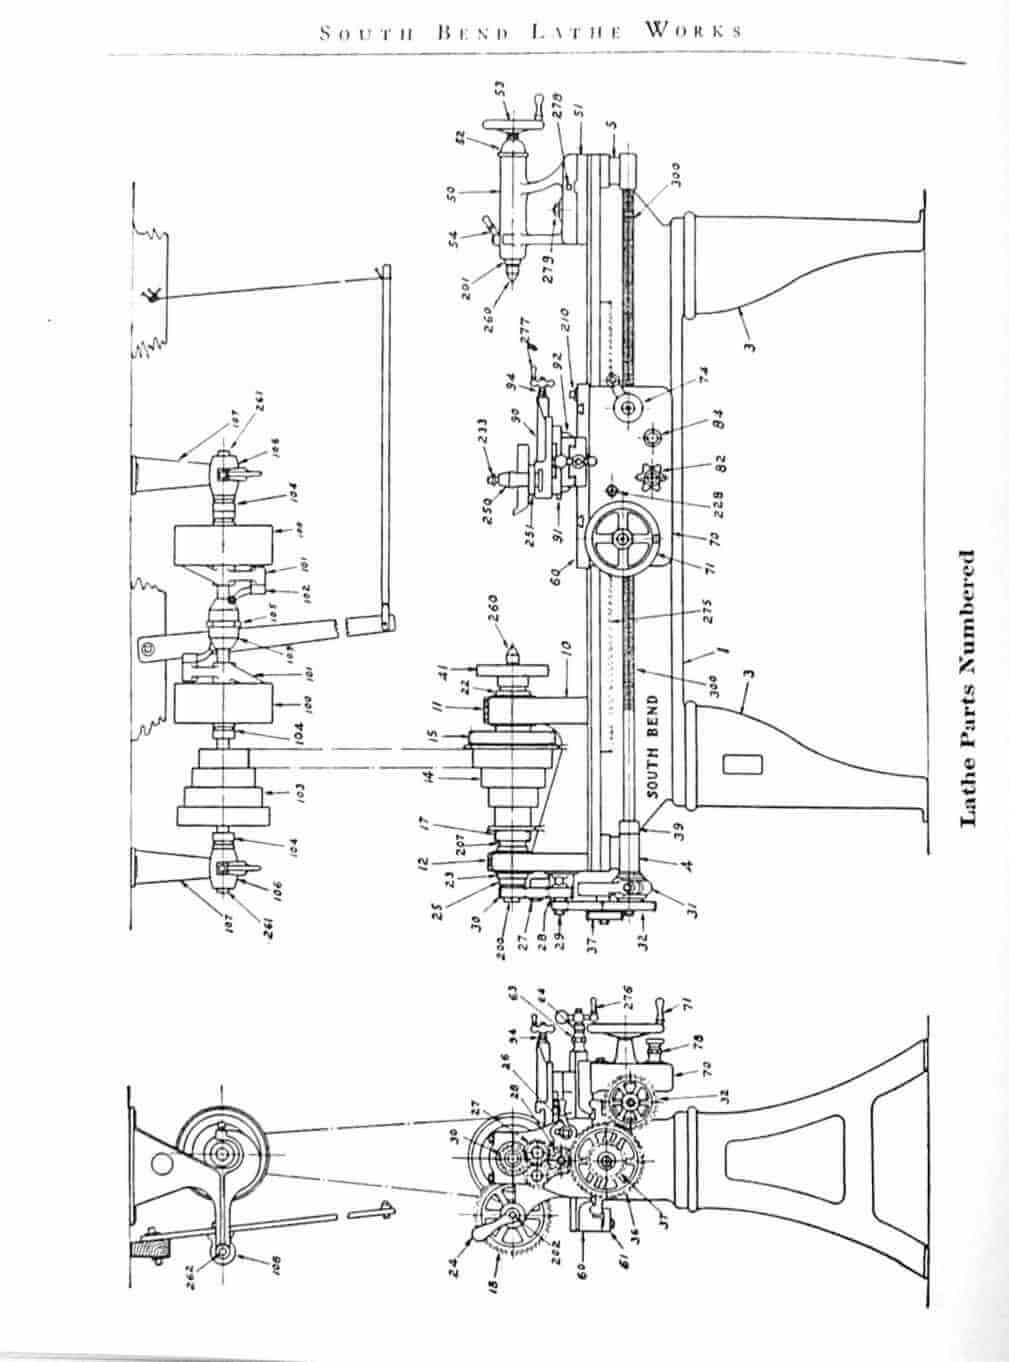 south bend lathe parts diagram   30 wiring diagram images